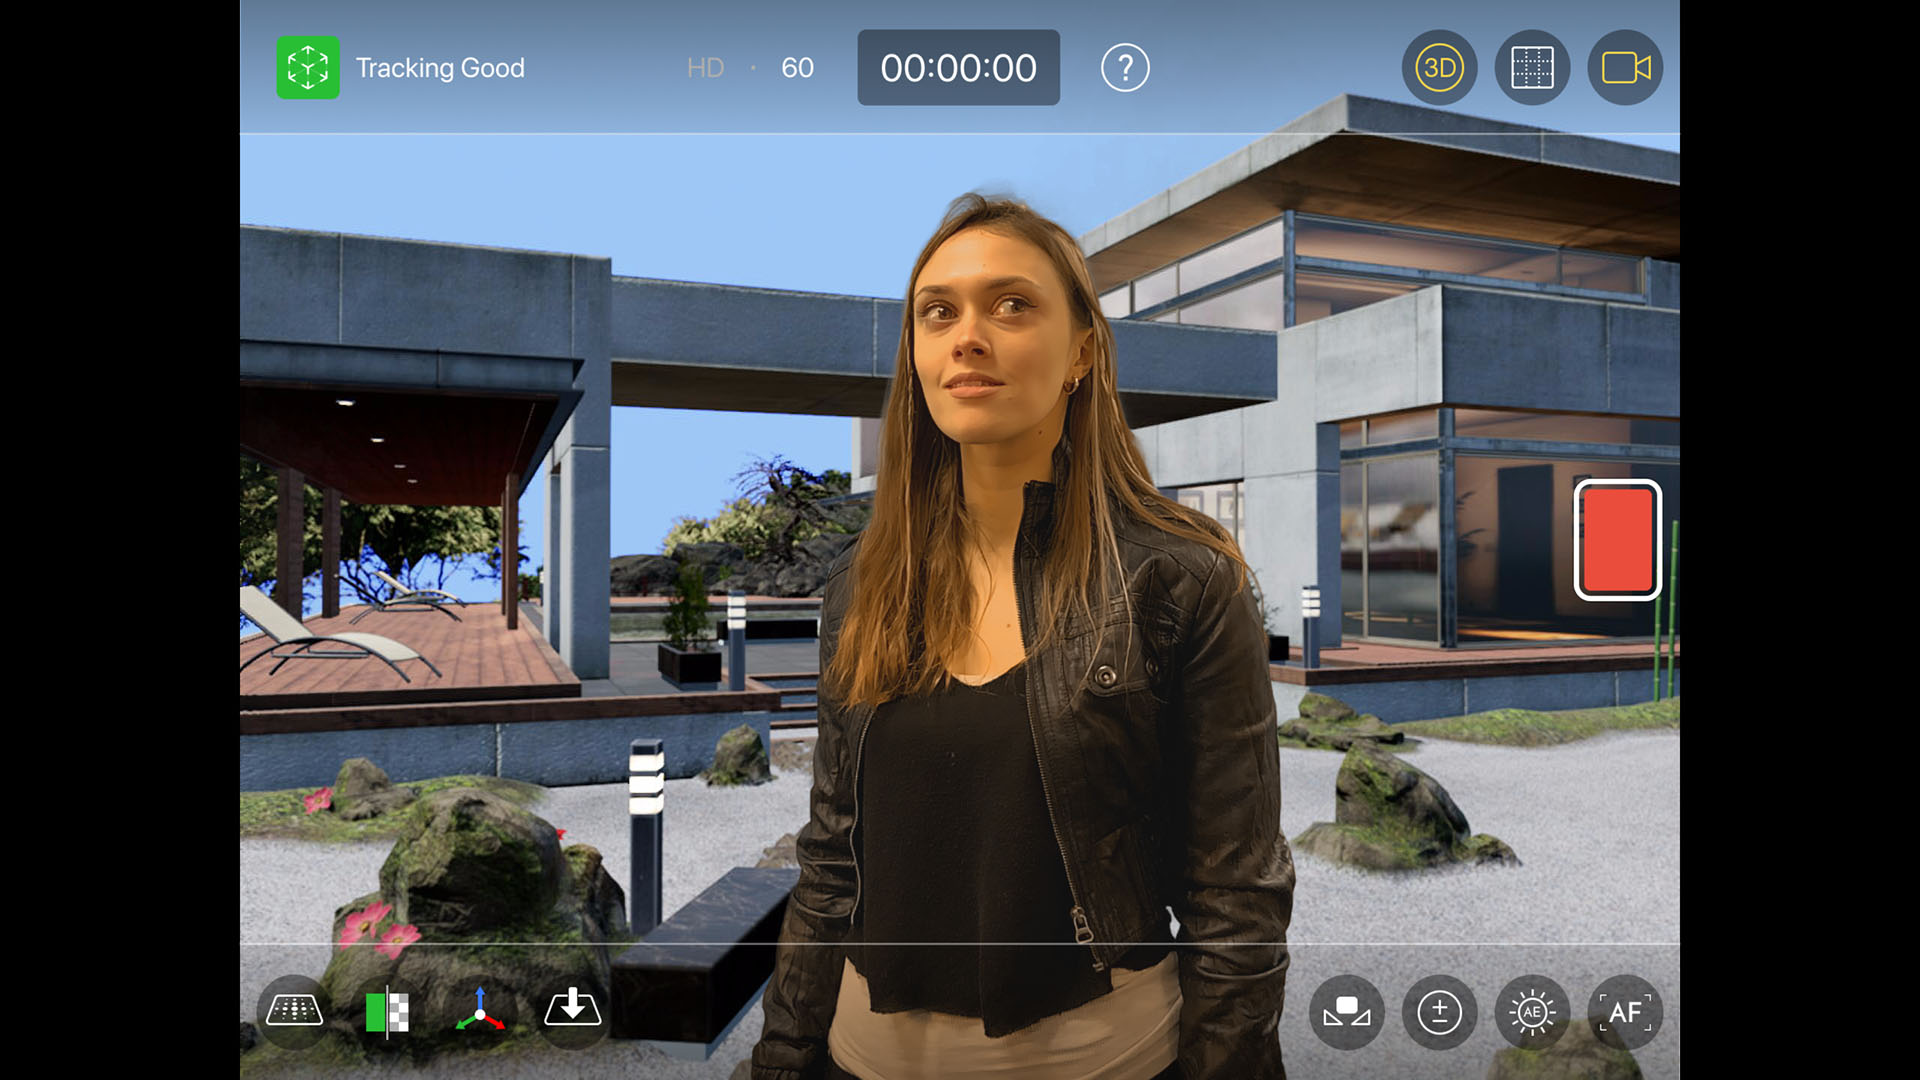 CamTrack AR version 2.0. Image: FXhome.